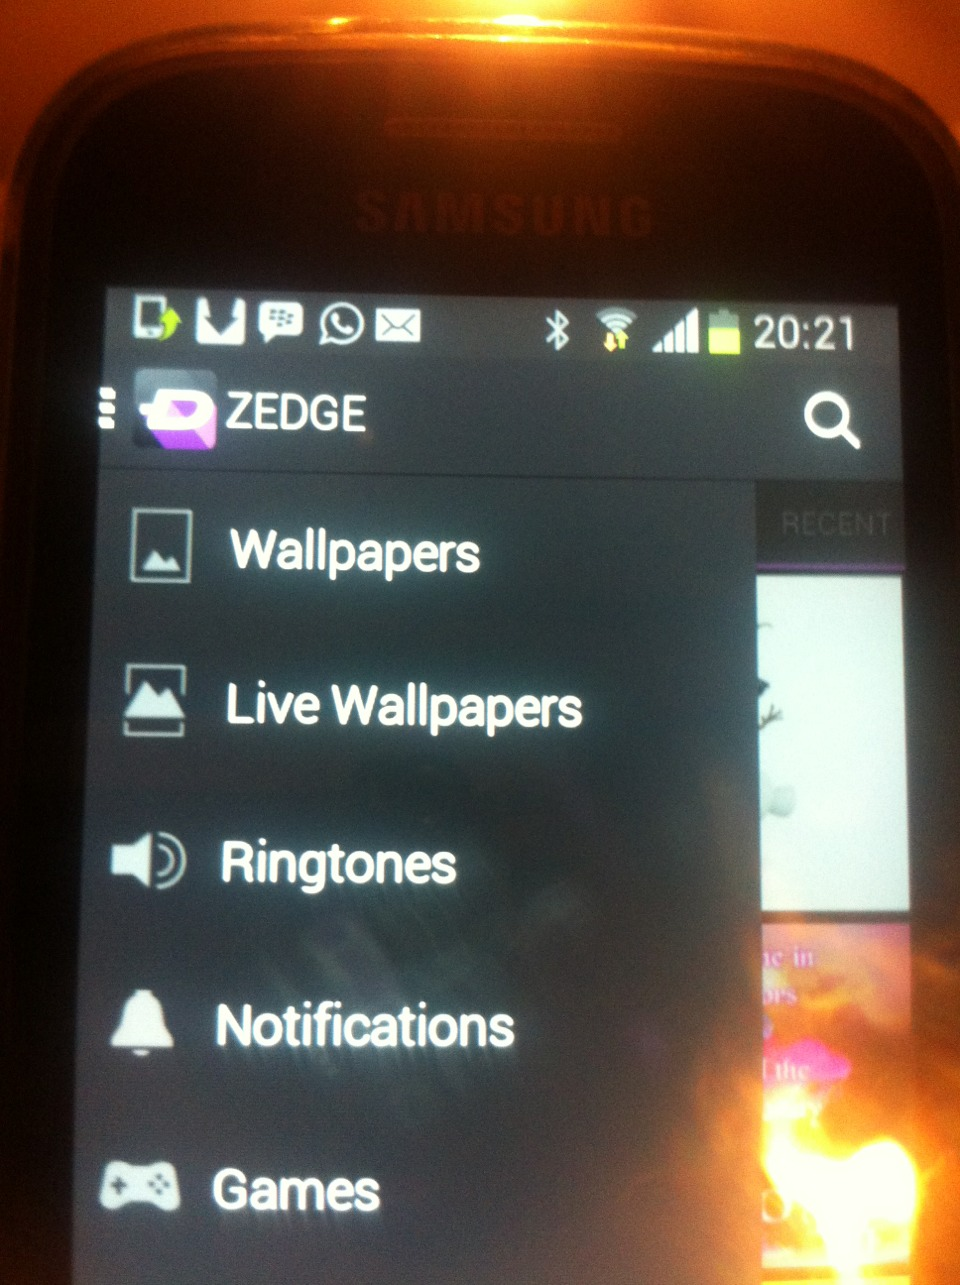 Download Zedge it has massive catalog of features that are displayed in pic